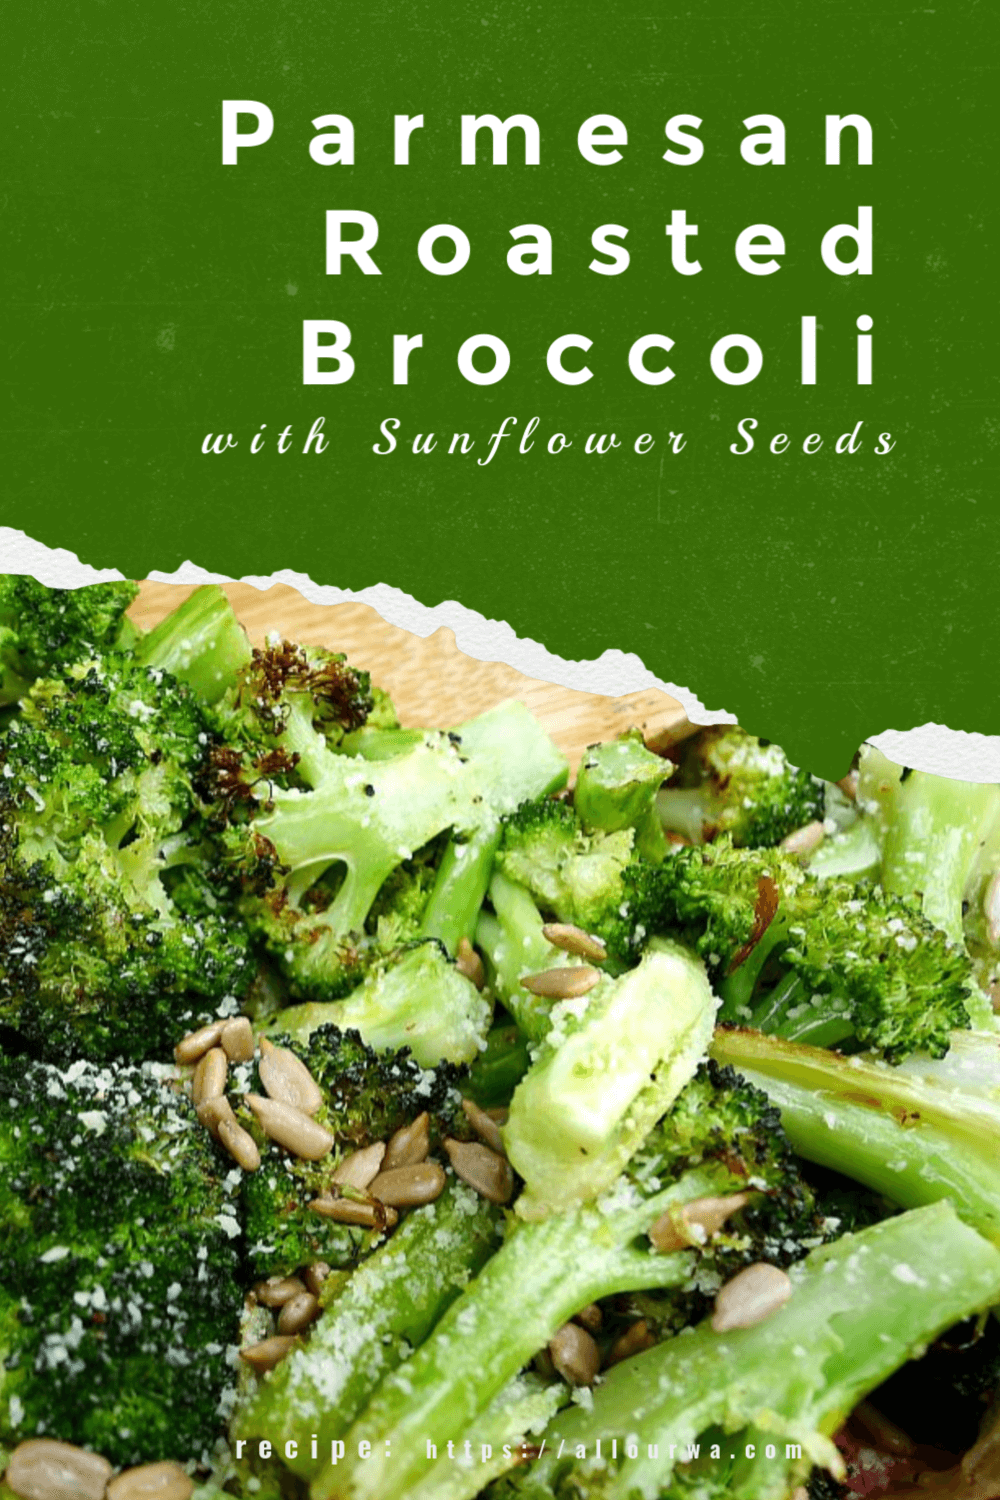 An easy and healthy way to prepare broccoli. It is tossed with olive oil and then roasted with garlic. The roasted broccoli is finished with Parmesan cheese, fresh lemon juice and zest with a sprinkle of sunflower seeds. A fresh and bright taste to a favorite veggie.